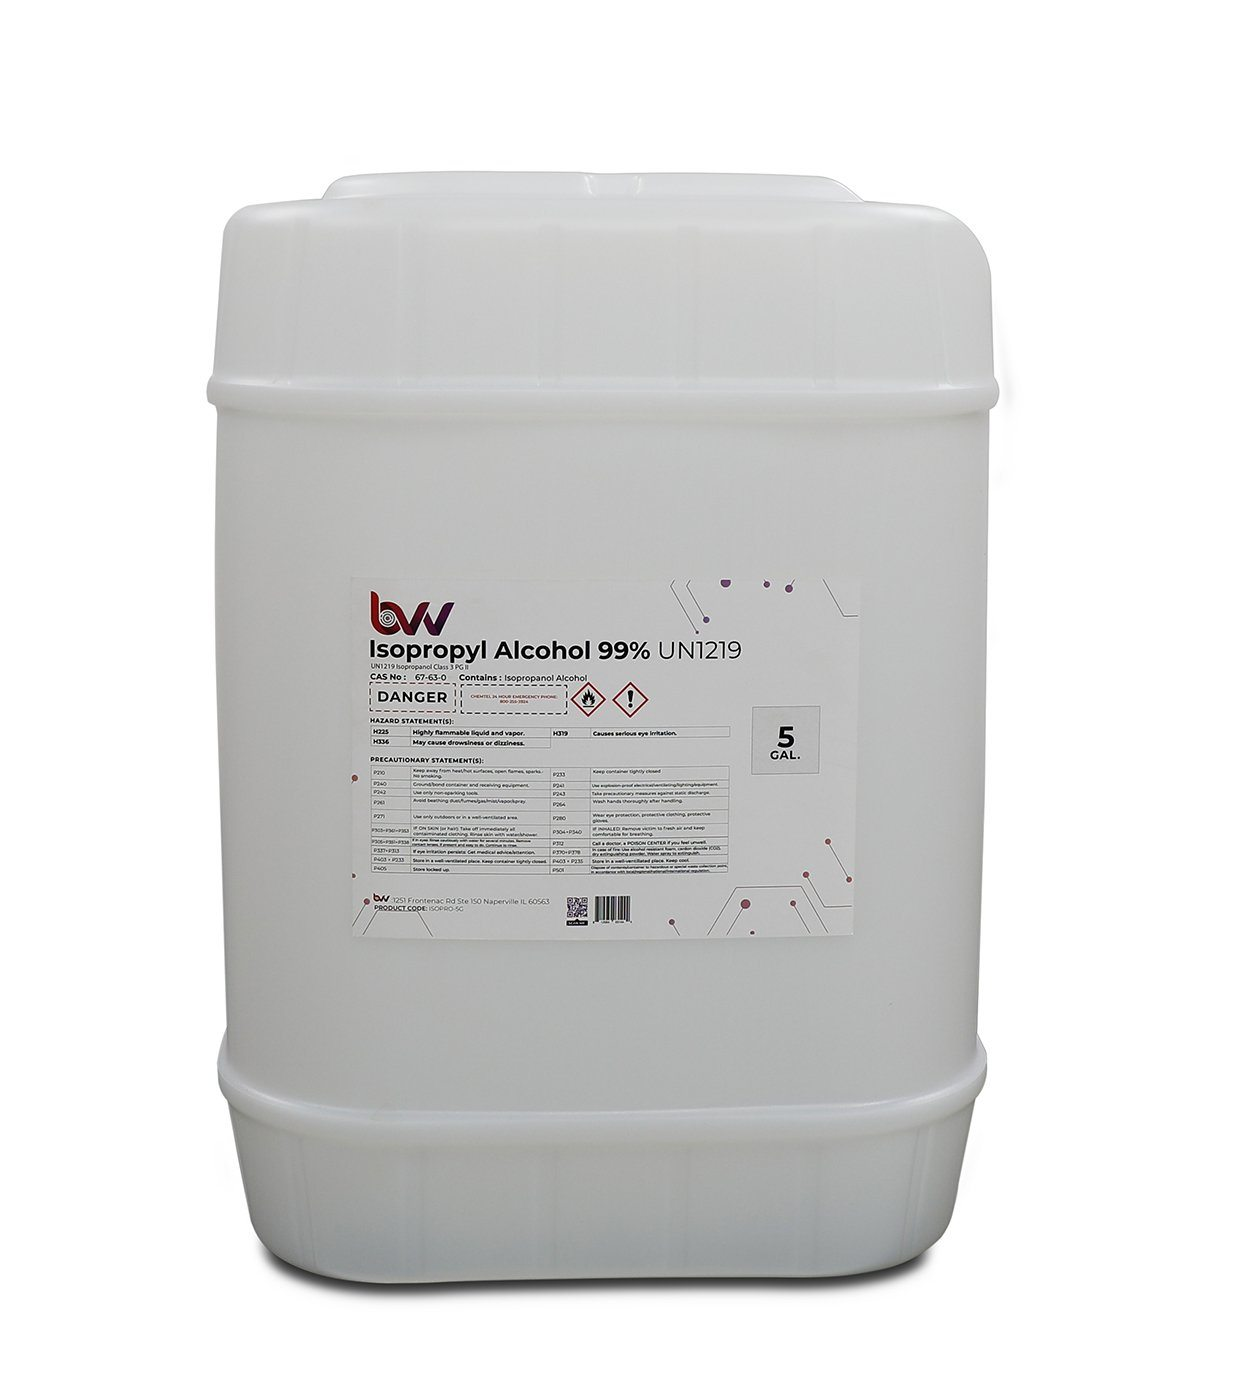 BVV™ High Purity Isopropyl Alcohol 99% - USP-NF Grade 5 gallon dispenser